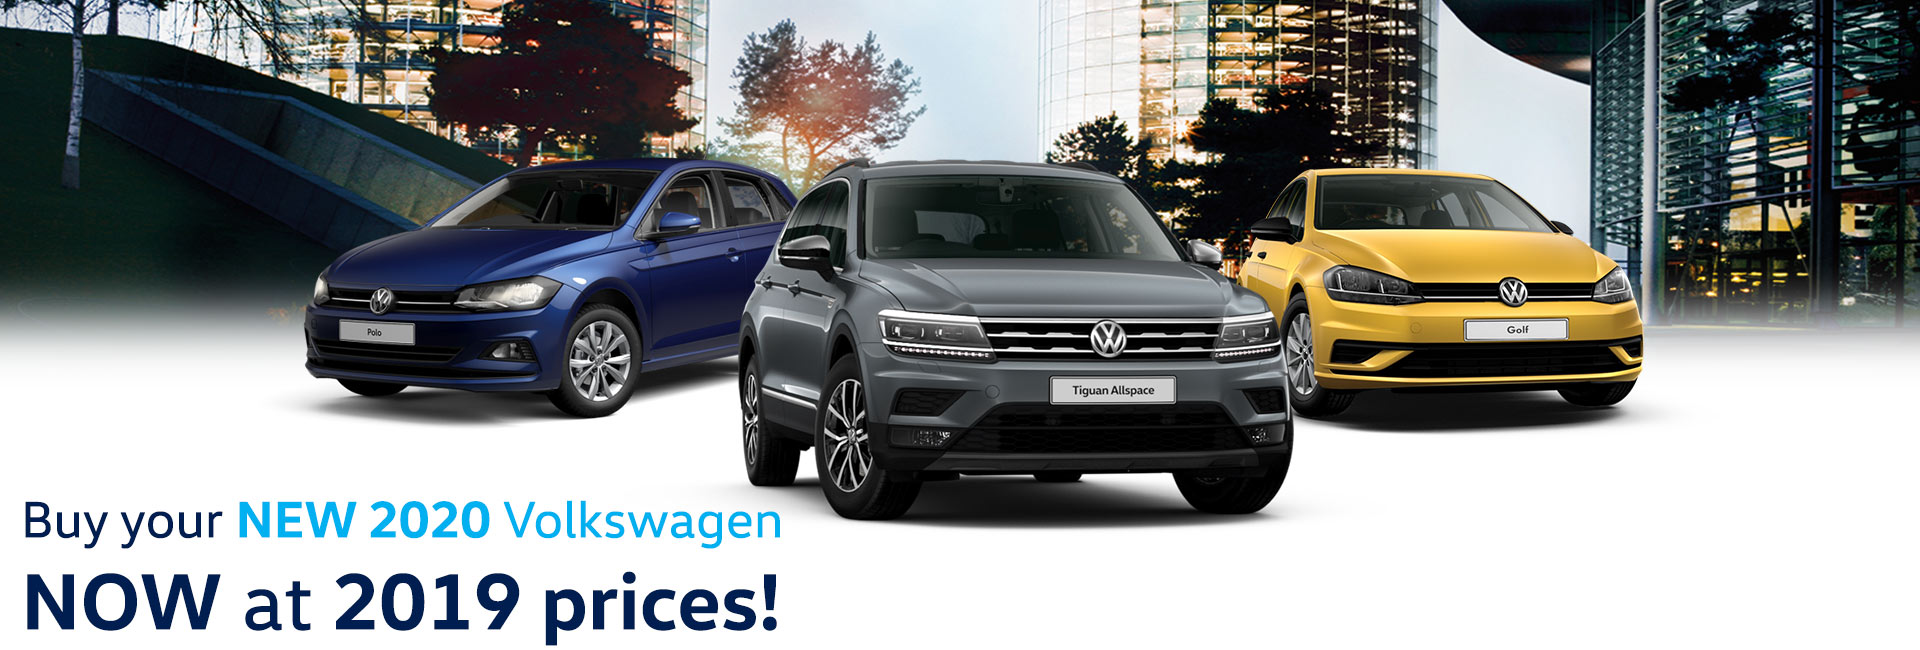 VW's at 2019 Prices